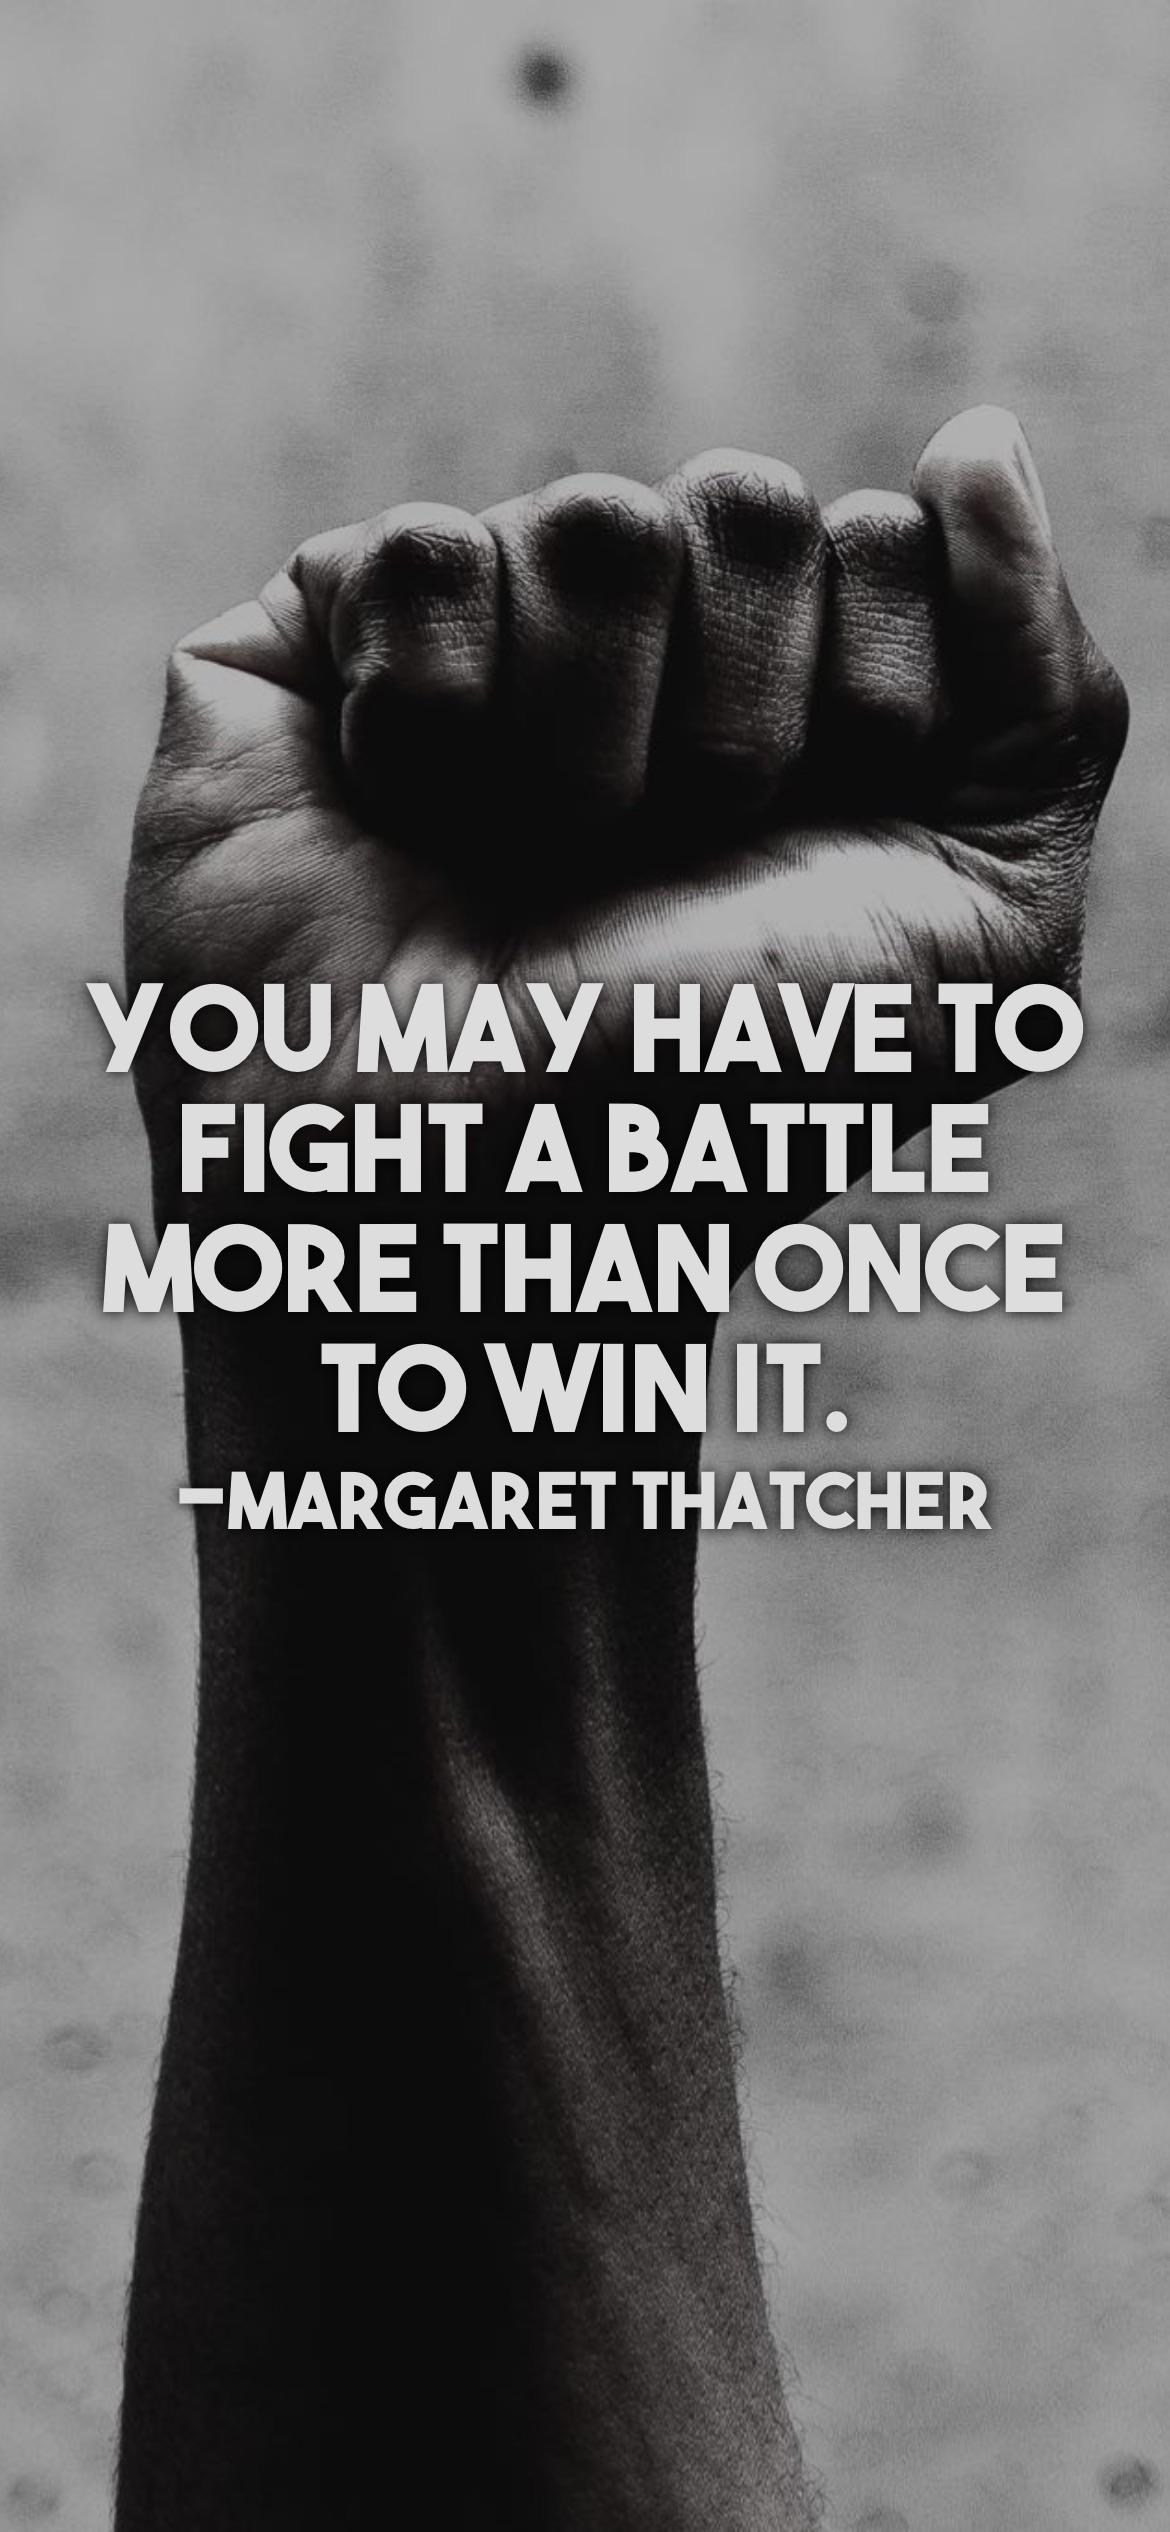 You may have to fight a battle more than once to win it. -Margaret Thatcher [2532 x 1170p]